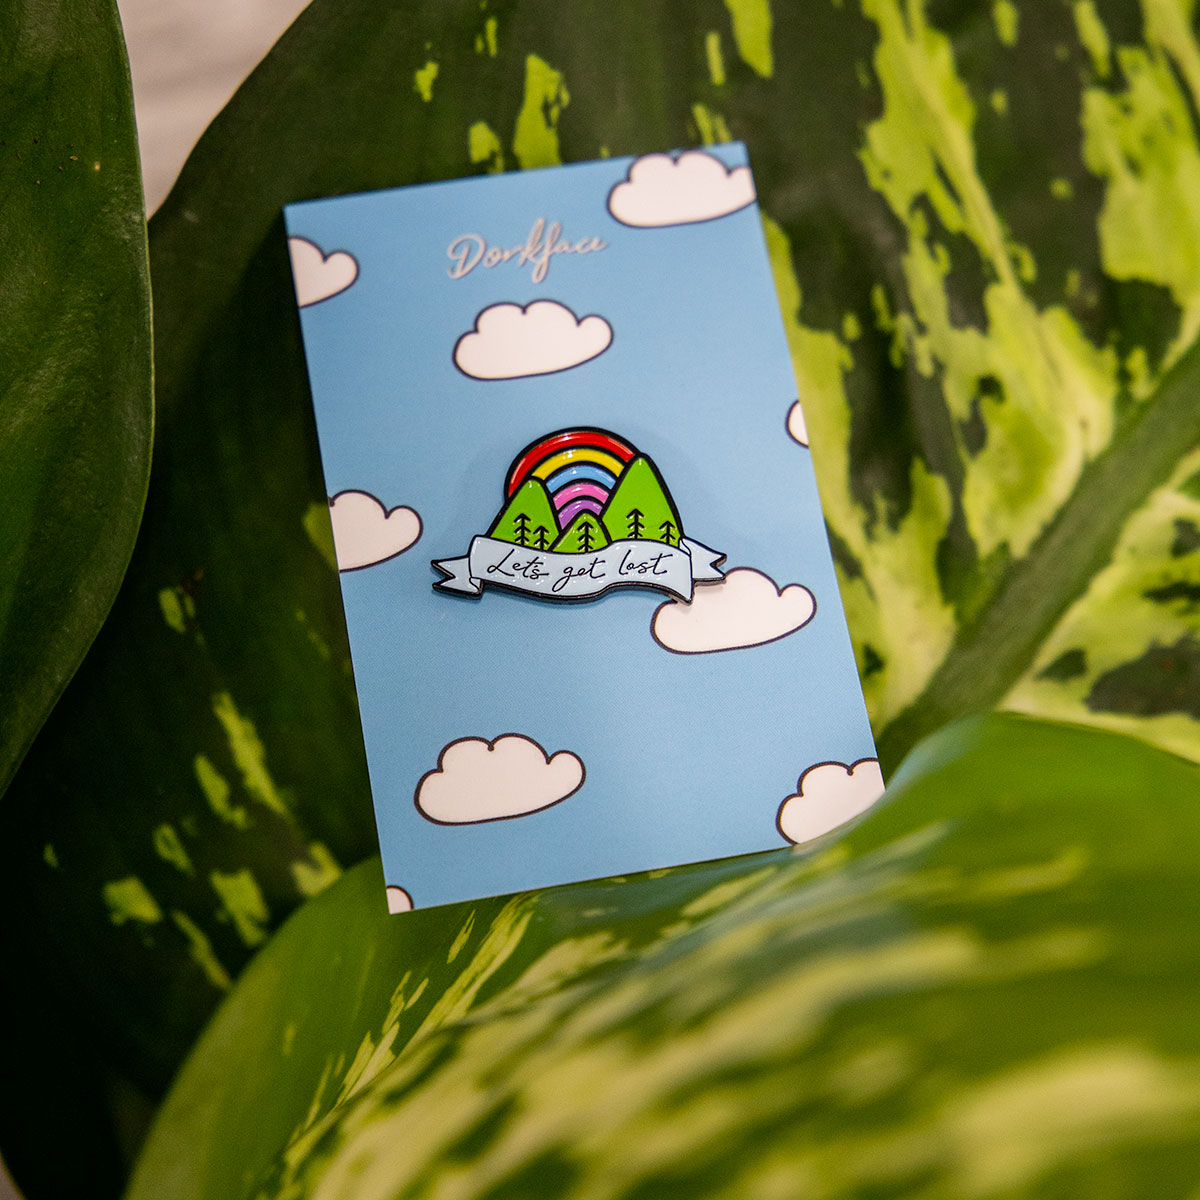 Soft Enamel Pin Badges with Backer